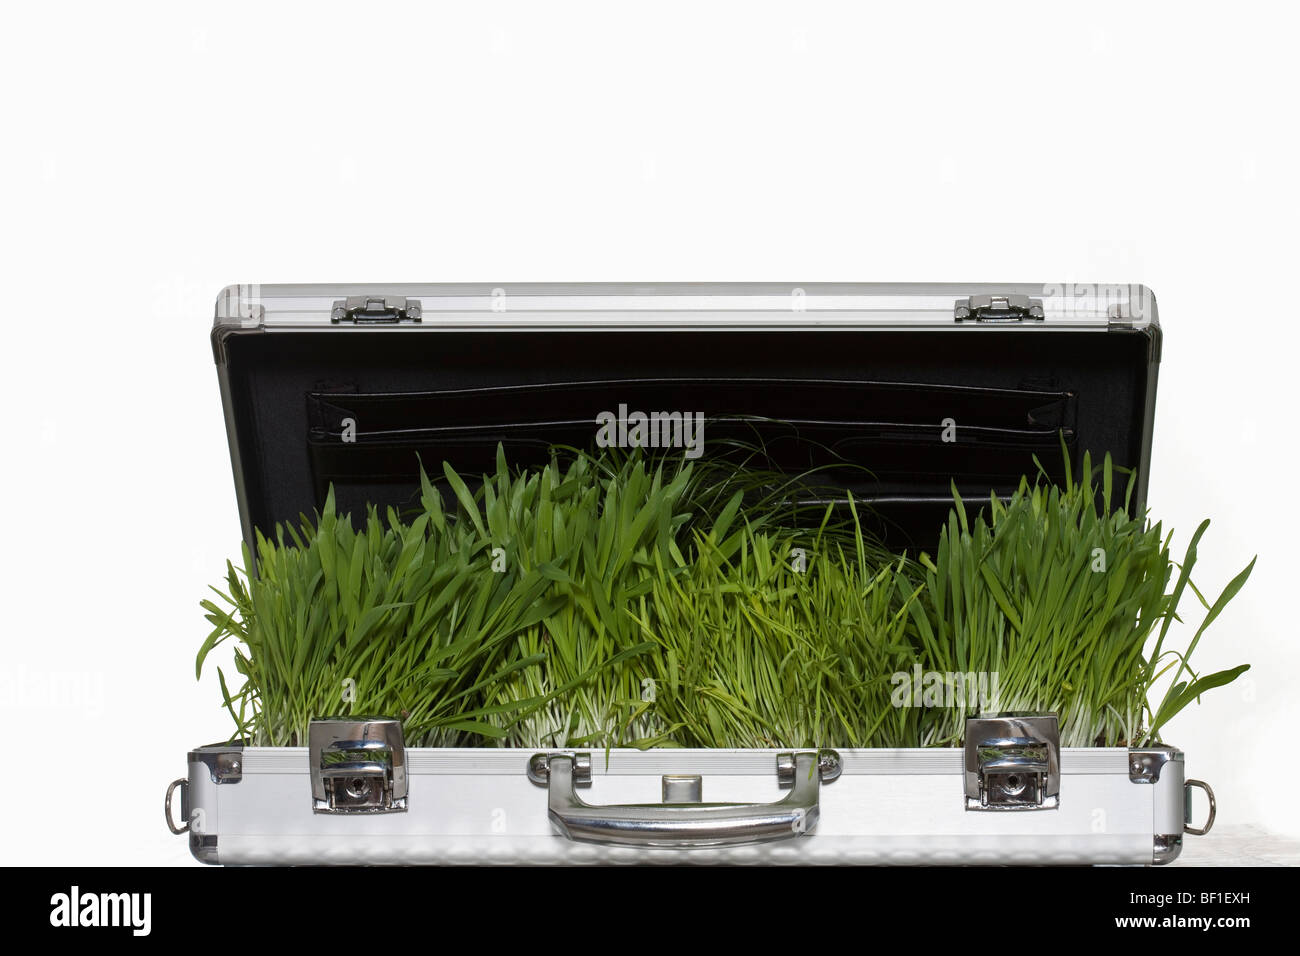 Wheatgrass growing out of a briefcase - Stock Image